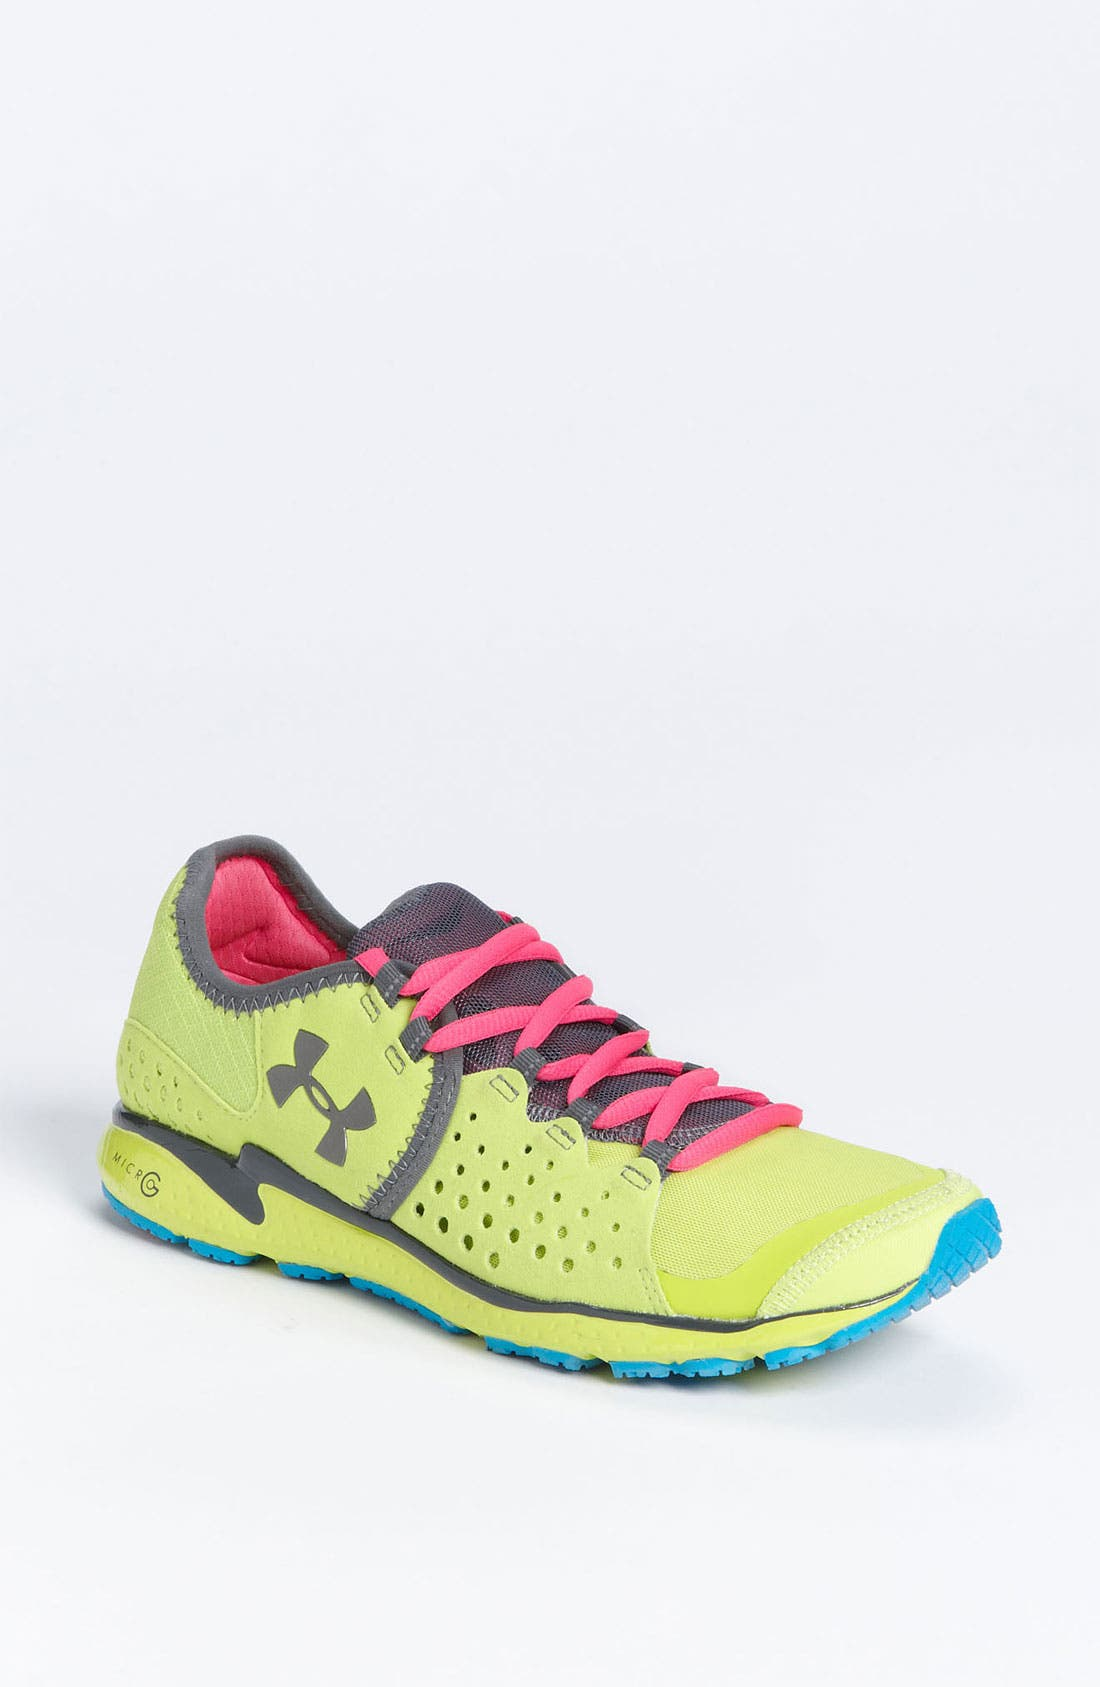 Alternate Image 1 Selected - Under Armour 'Micro G® Mantis' Running Shoe (Women)